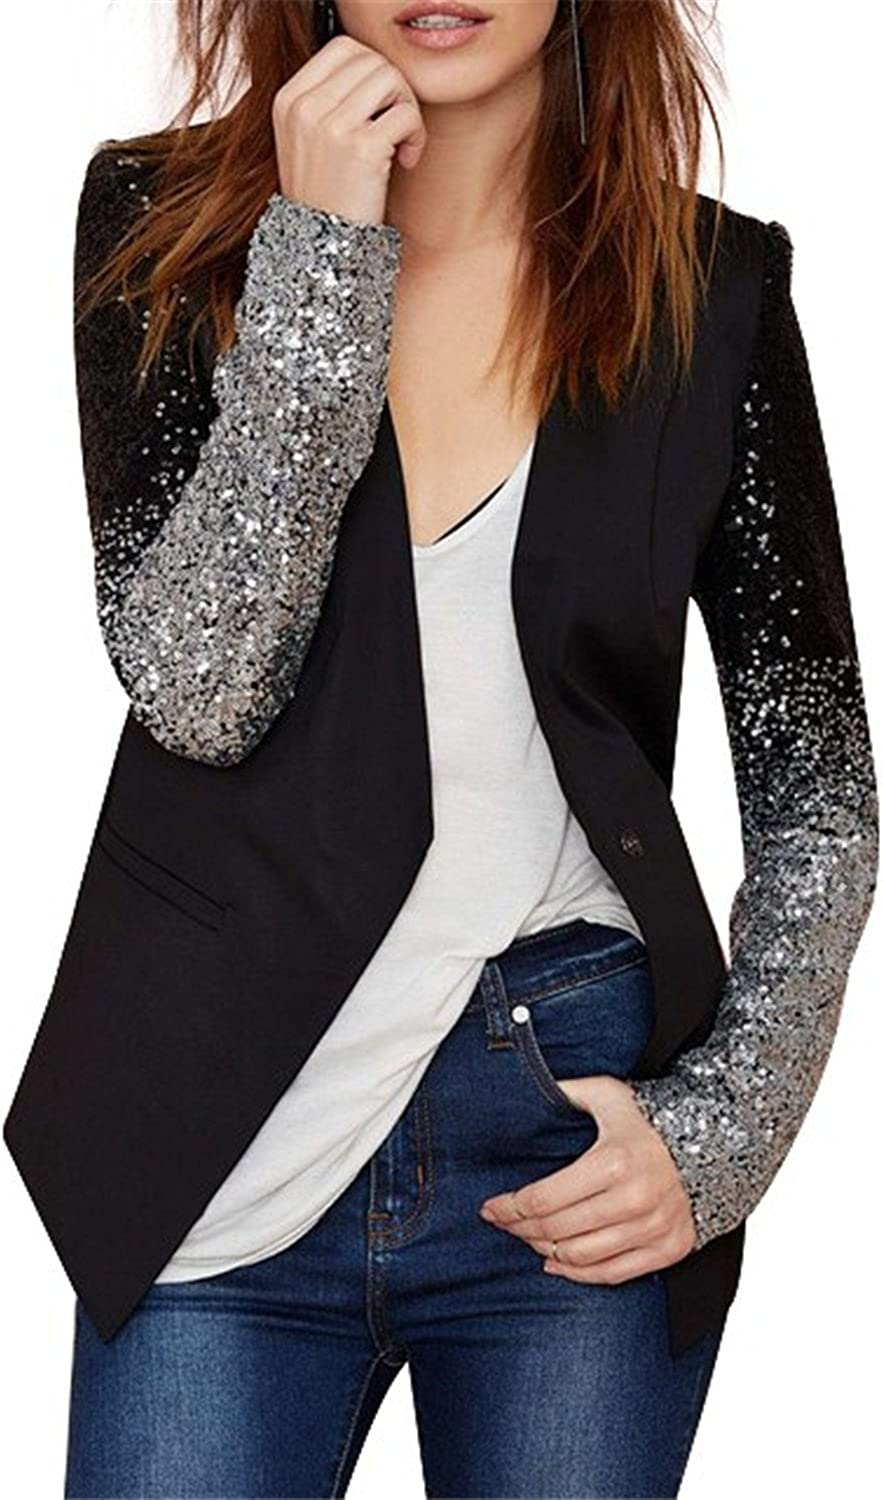 David Salc slim women Pu patchwork Black silver sequins Jackets Full sleeve winter coat for wholesale blackS